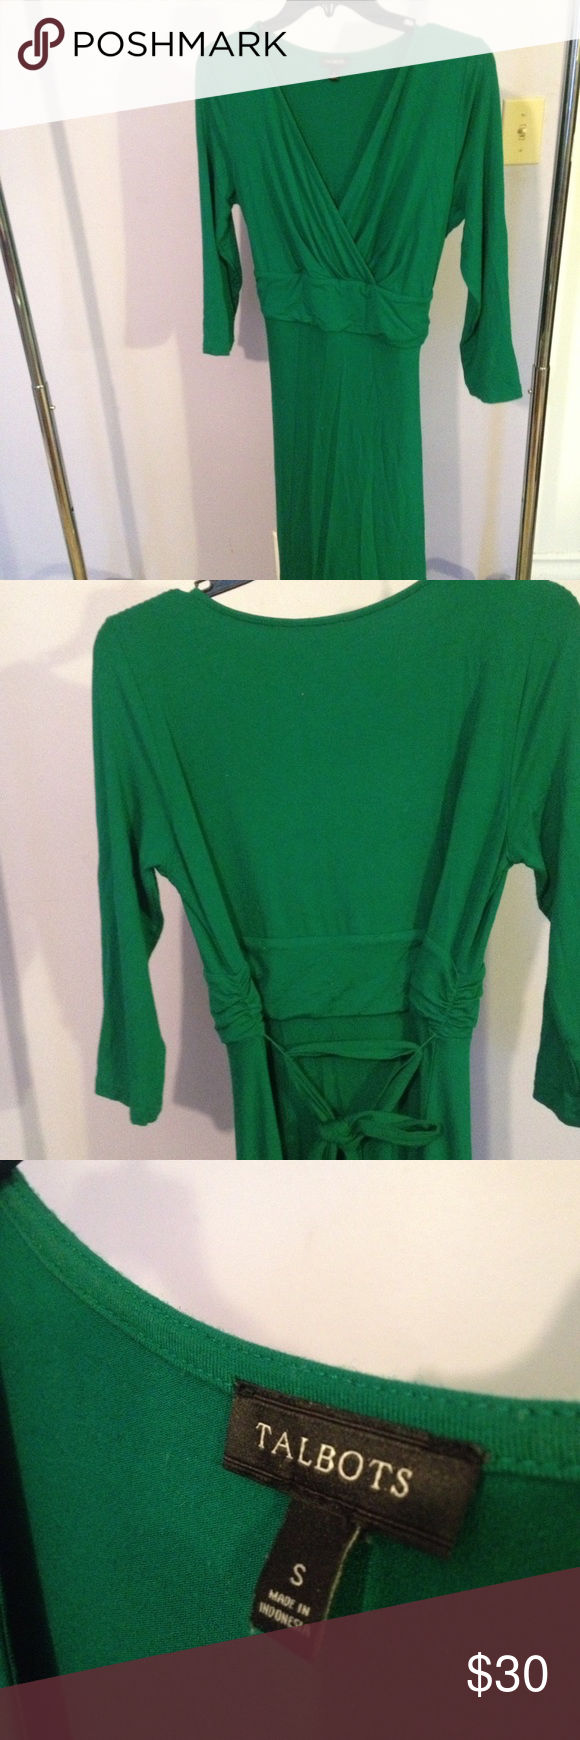 Talbots wrap dress This lovely dress is from Talbots. Bright green and cheery, this dress sits well on the body. Comes with a tie, to tie the dress whichever way you'd like. Size small. 3/4 sleeves. Talbots Dresses